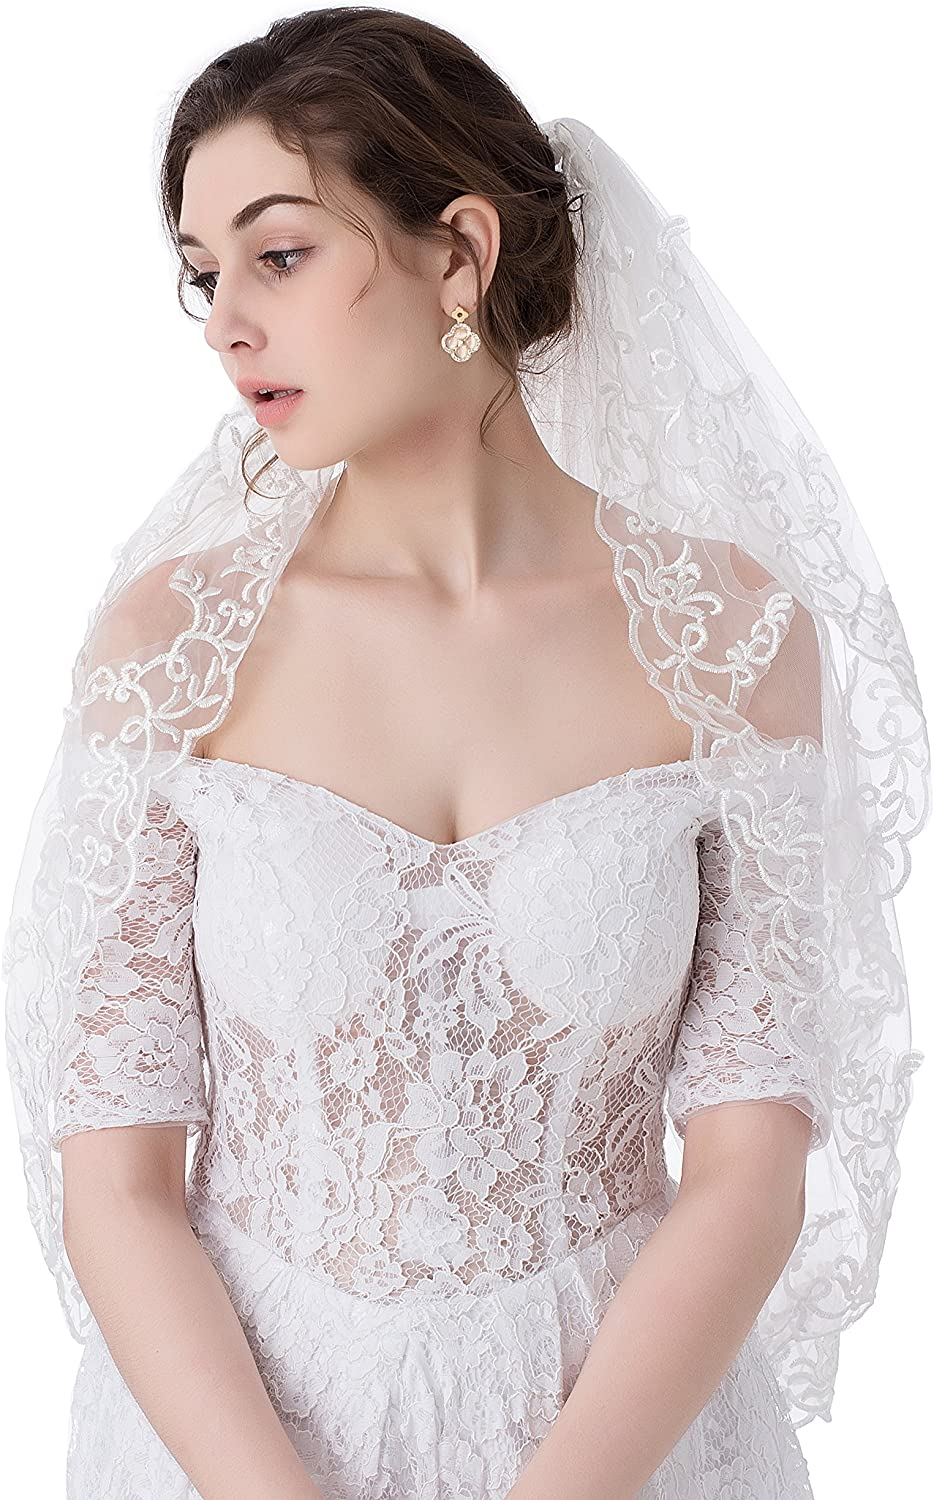 MariRobe 2 Tiers Embroidery Lace Edge Bridal Wedding Veils with Comb